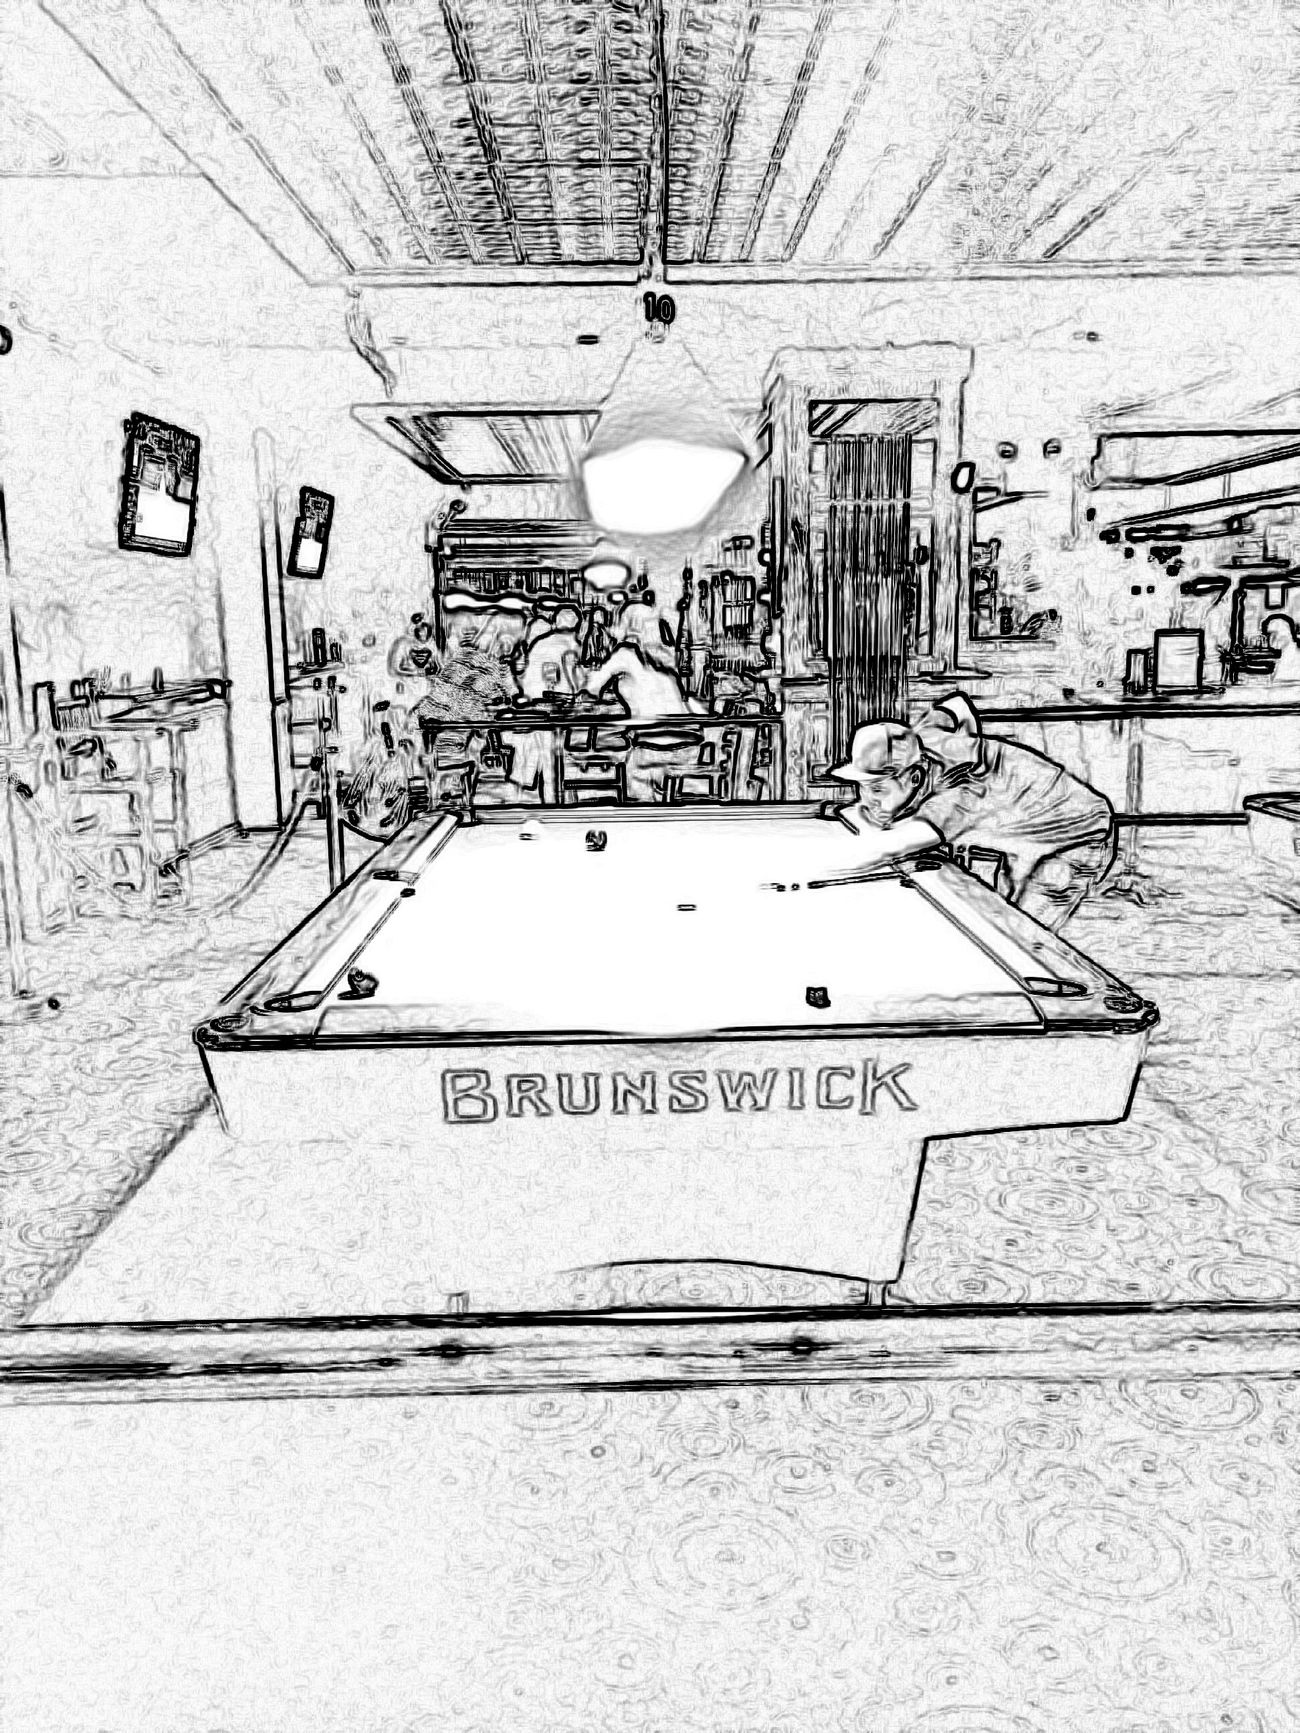 Amsterdam Billiards 9 Ball Billiards Sketches